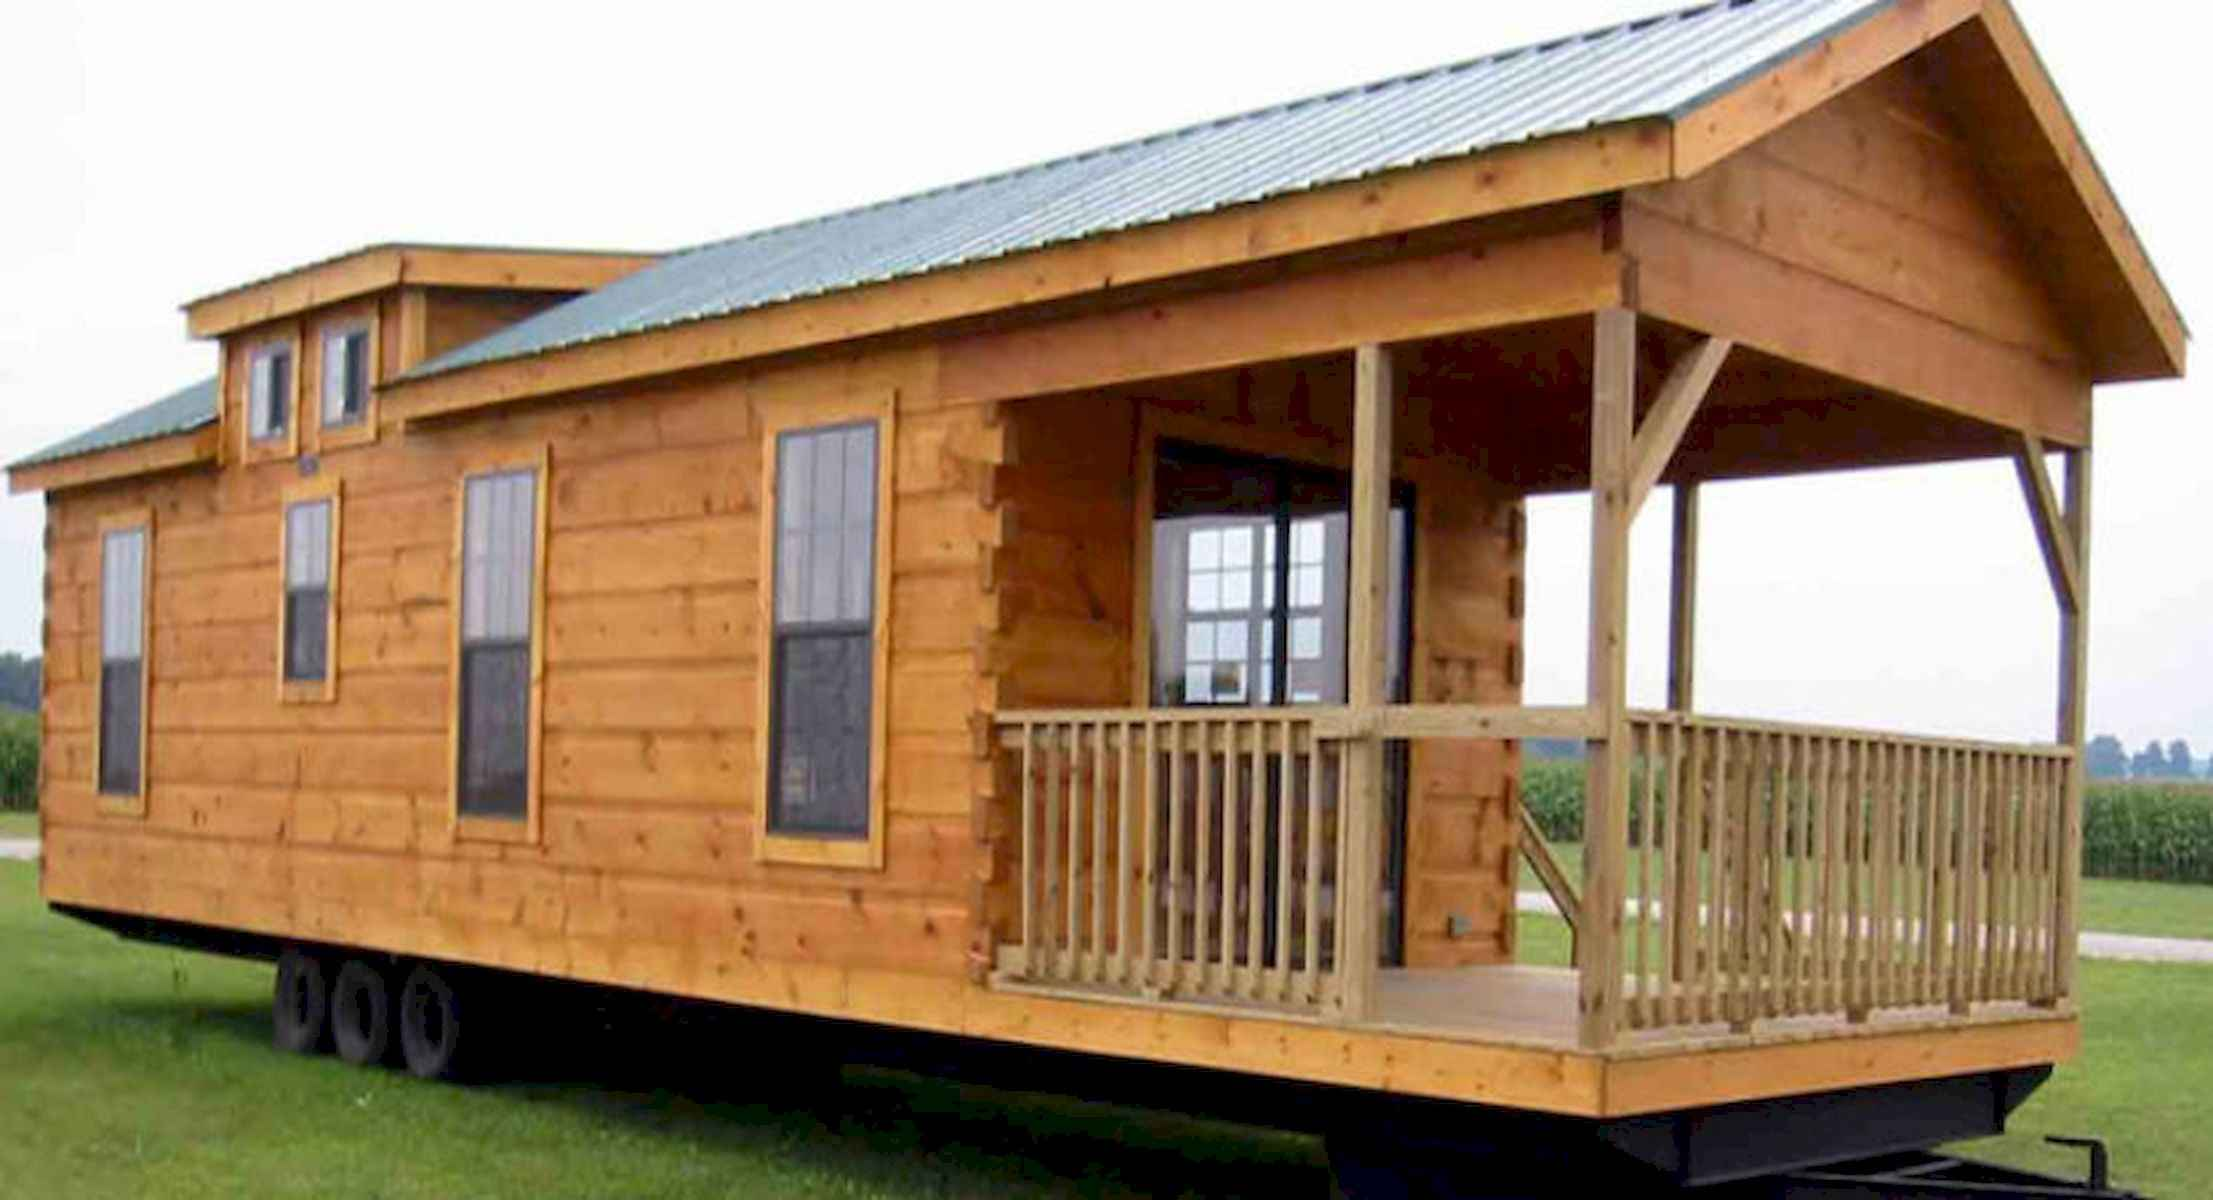 60 Rustic Log Cabin Homes Plans Design Ideas And Remodel (37)